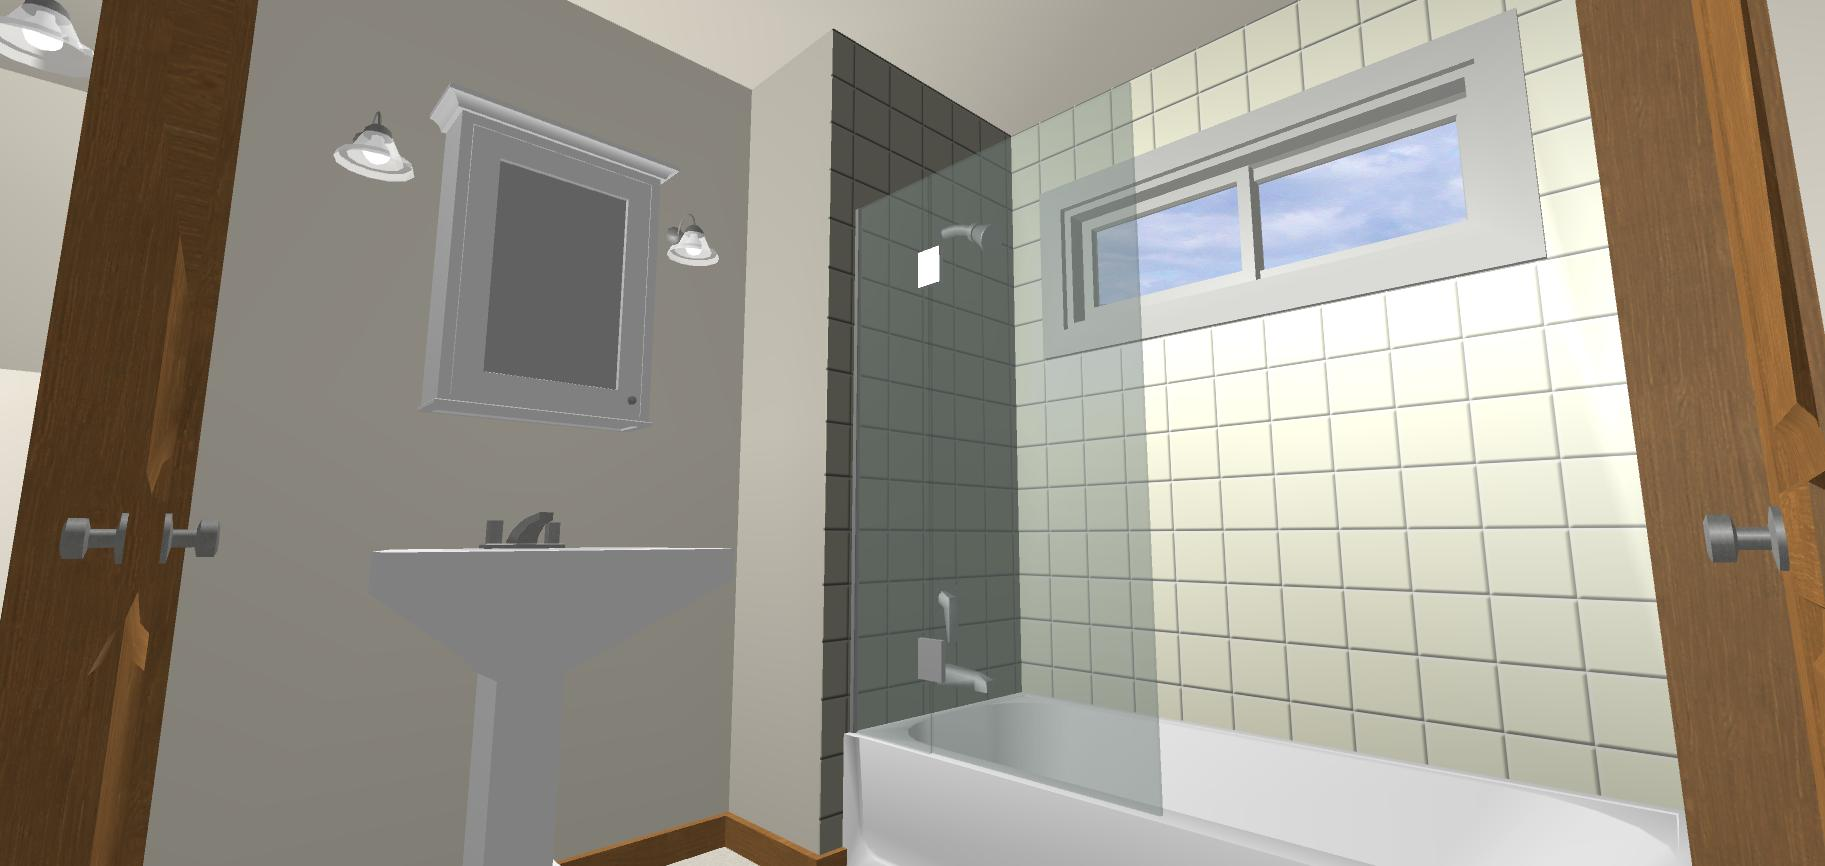 Fenster Bad Window In Shower Tub Main Bath Pinterest Window